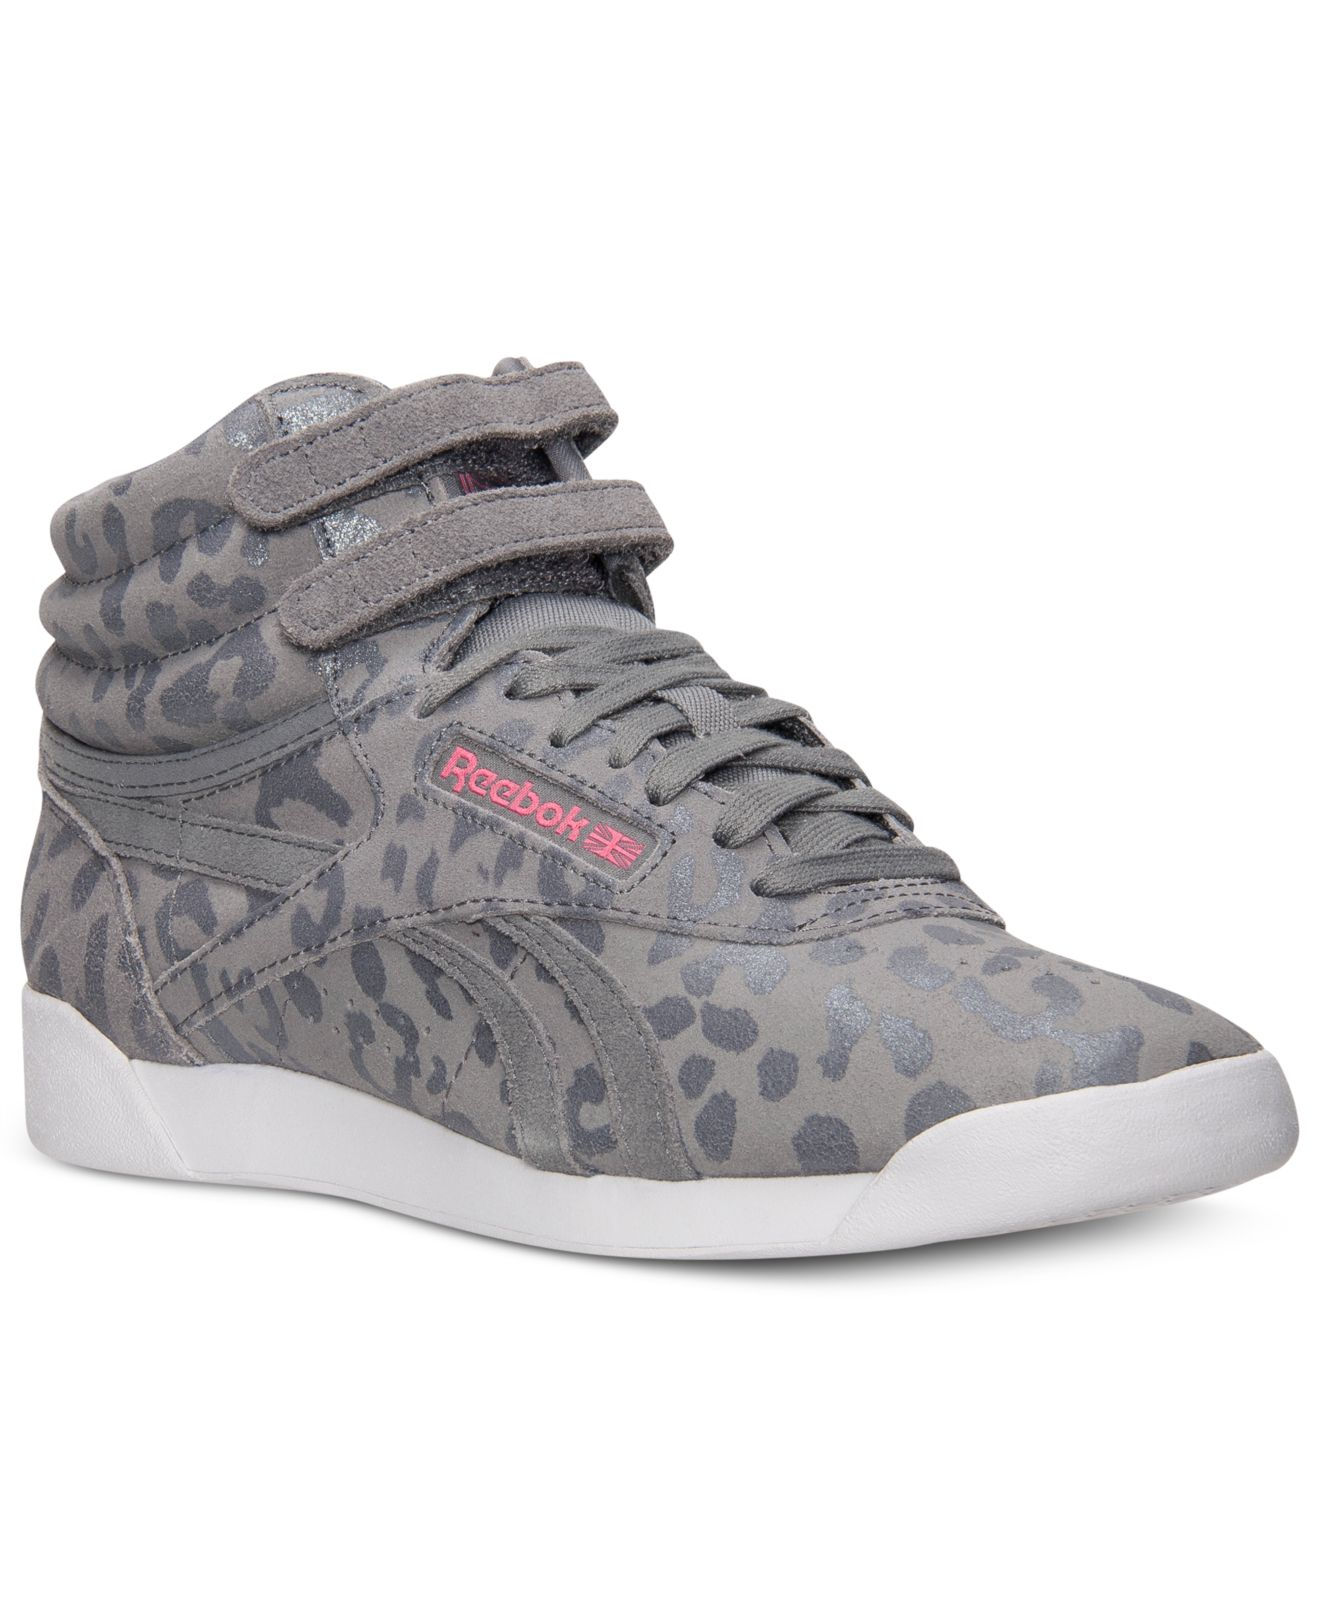 reebok high tops womens. gallery reebok high tops womens